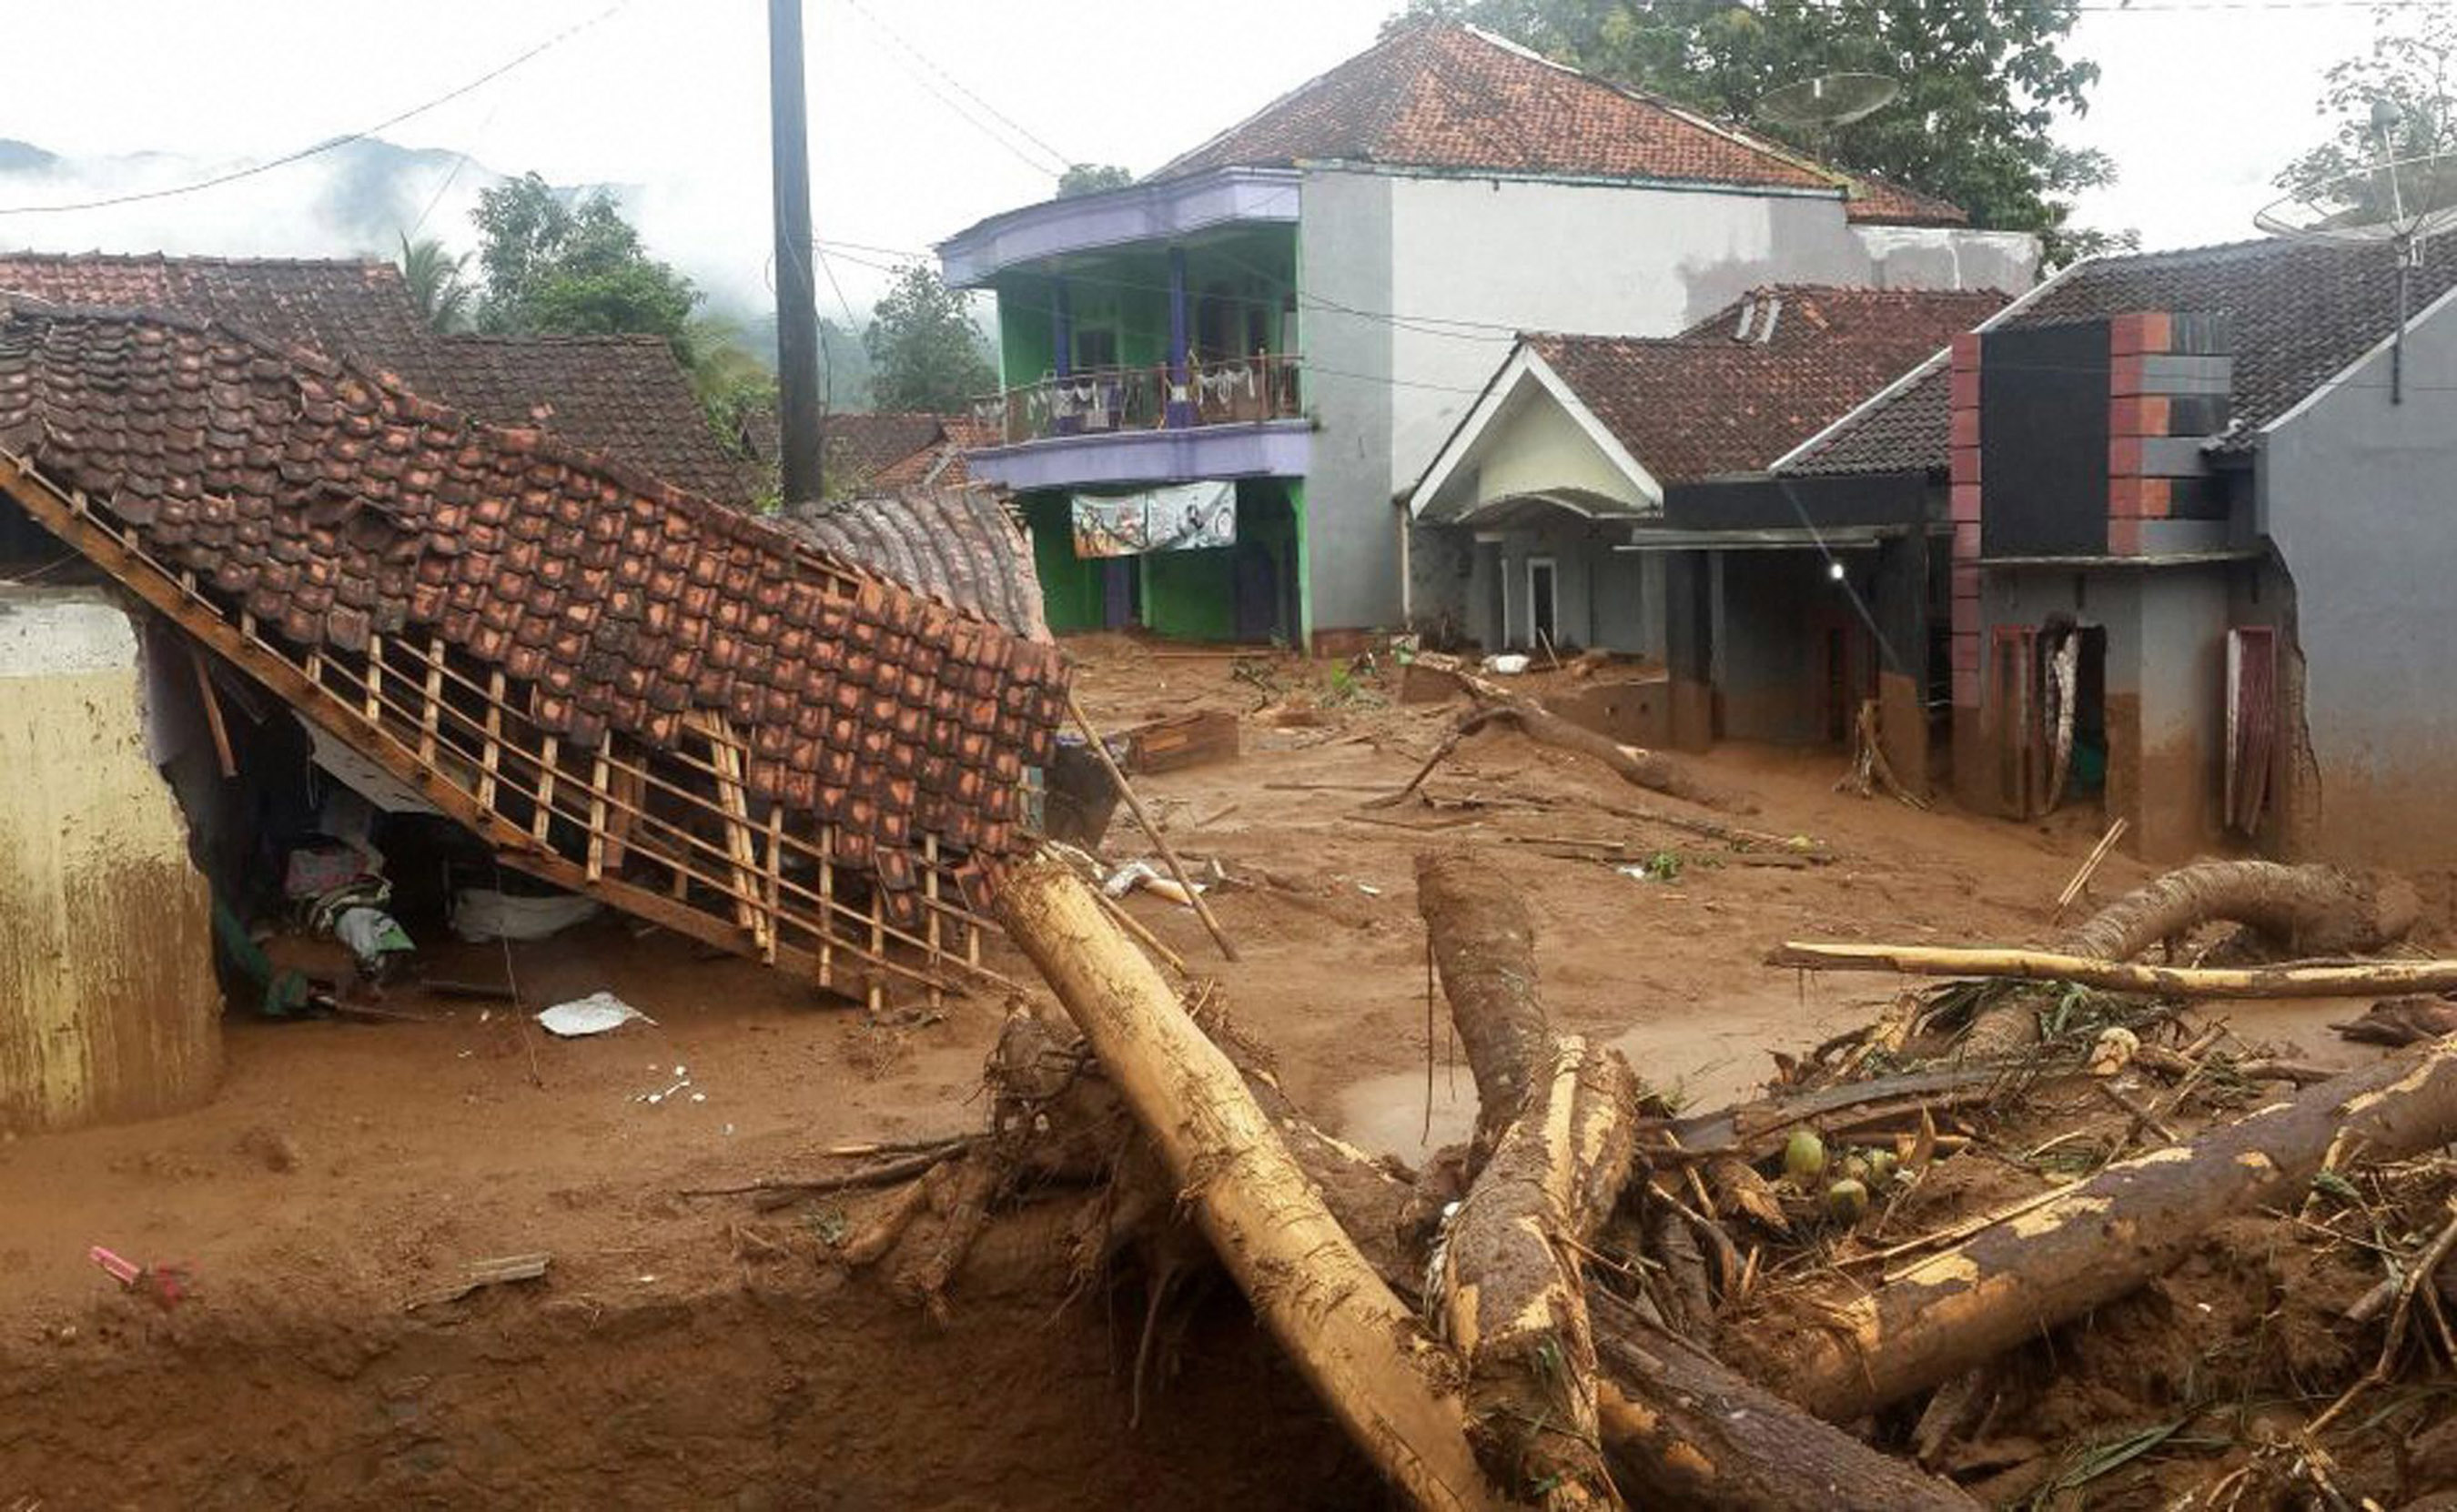 Houses are seen affected by a landslide in Brebes, Central Java, Indonesia. (AP/PTI)